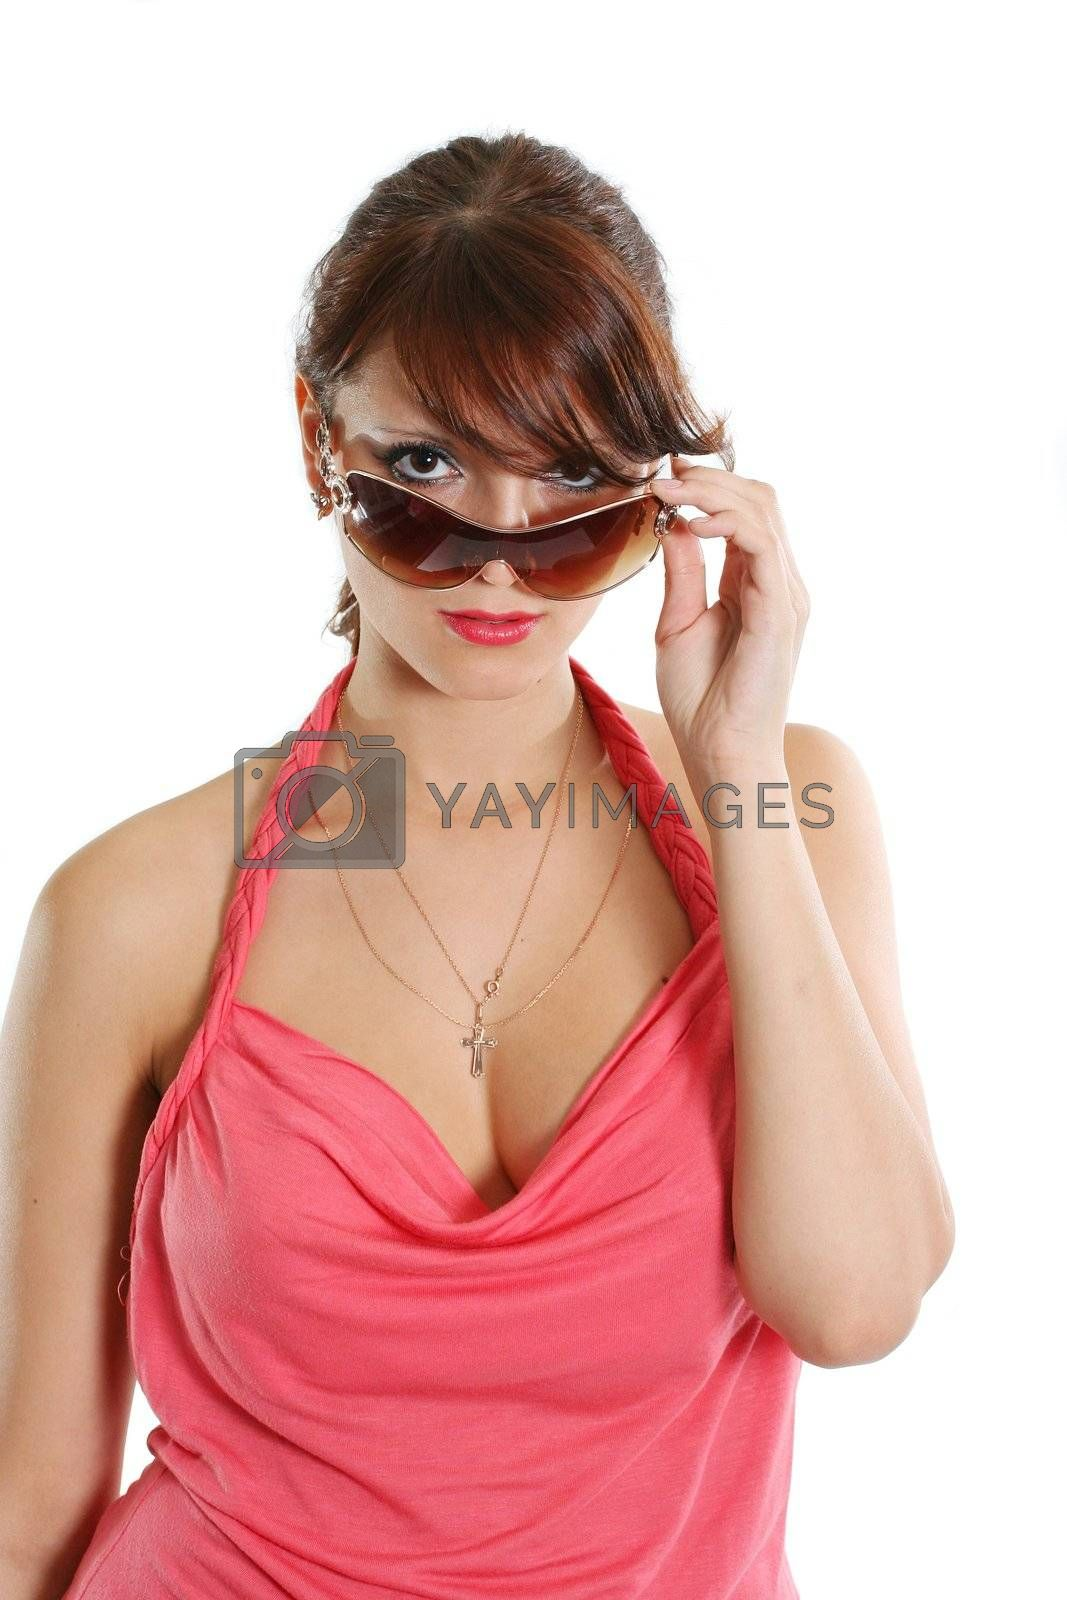 sunglasses adult hair females fashion woman young